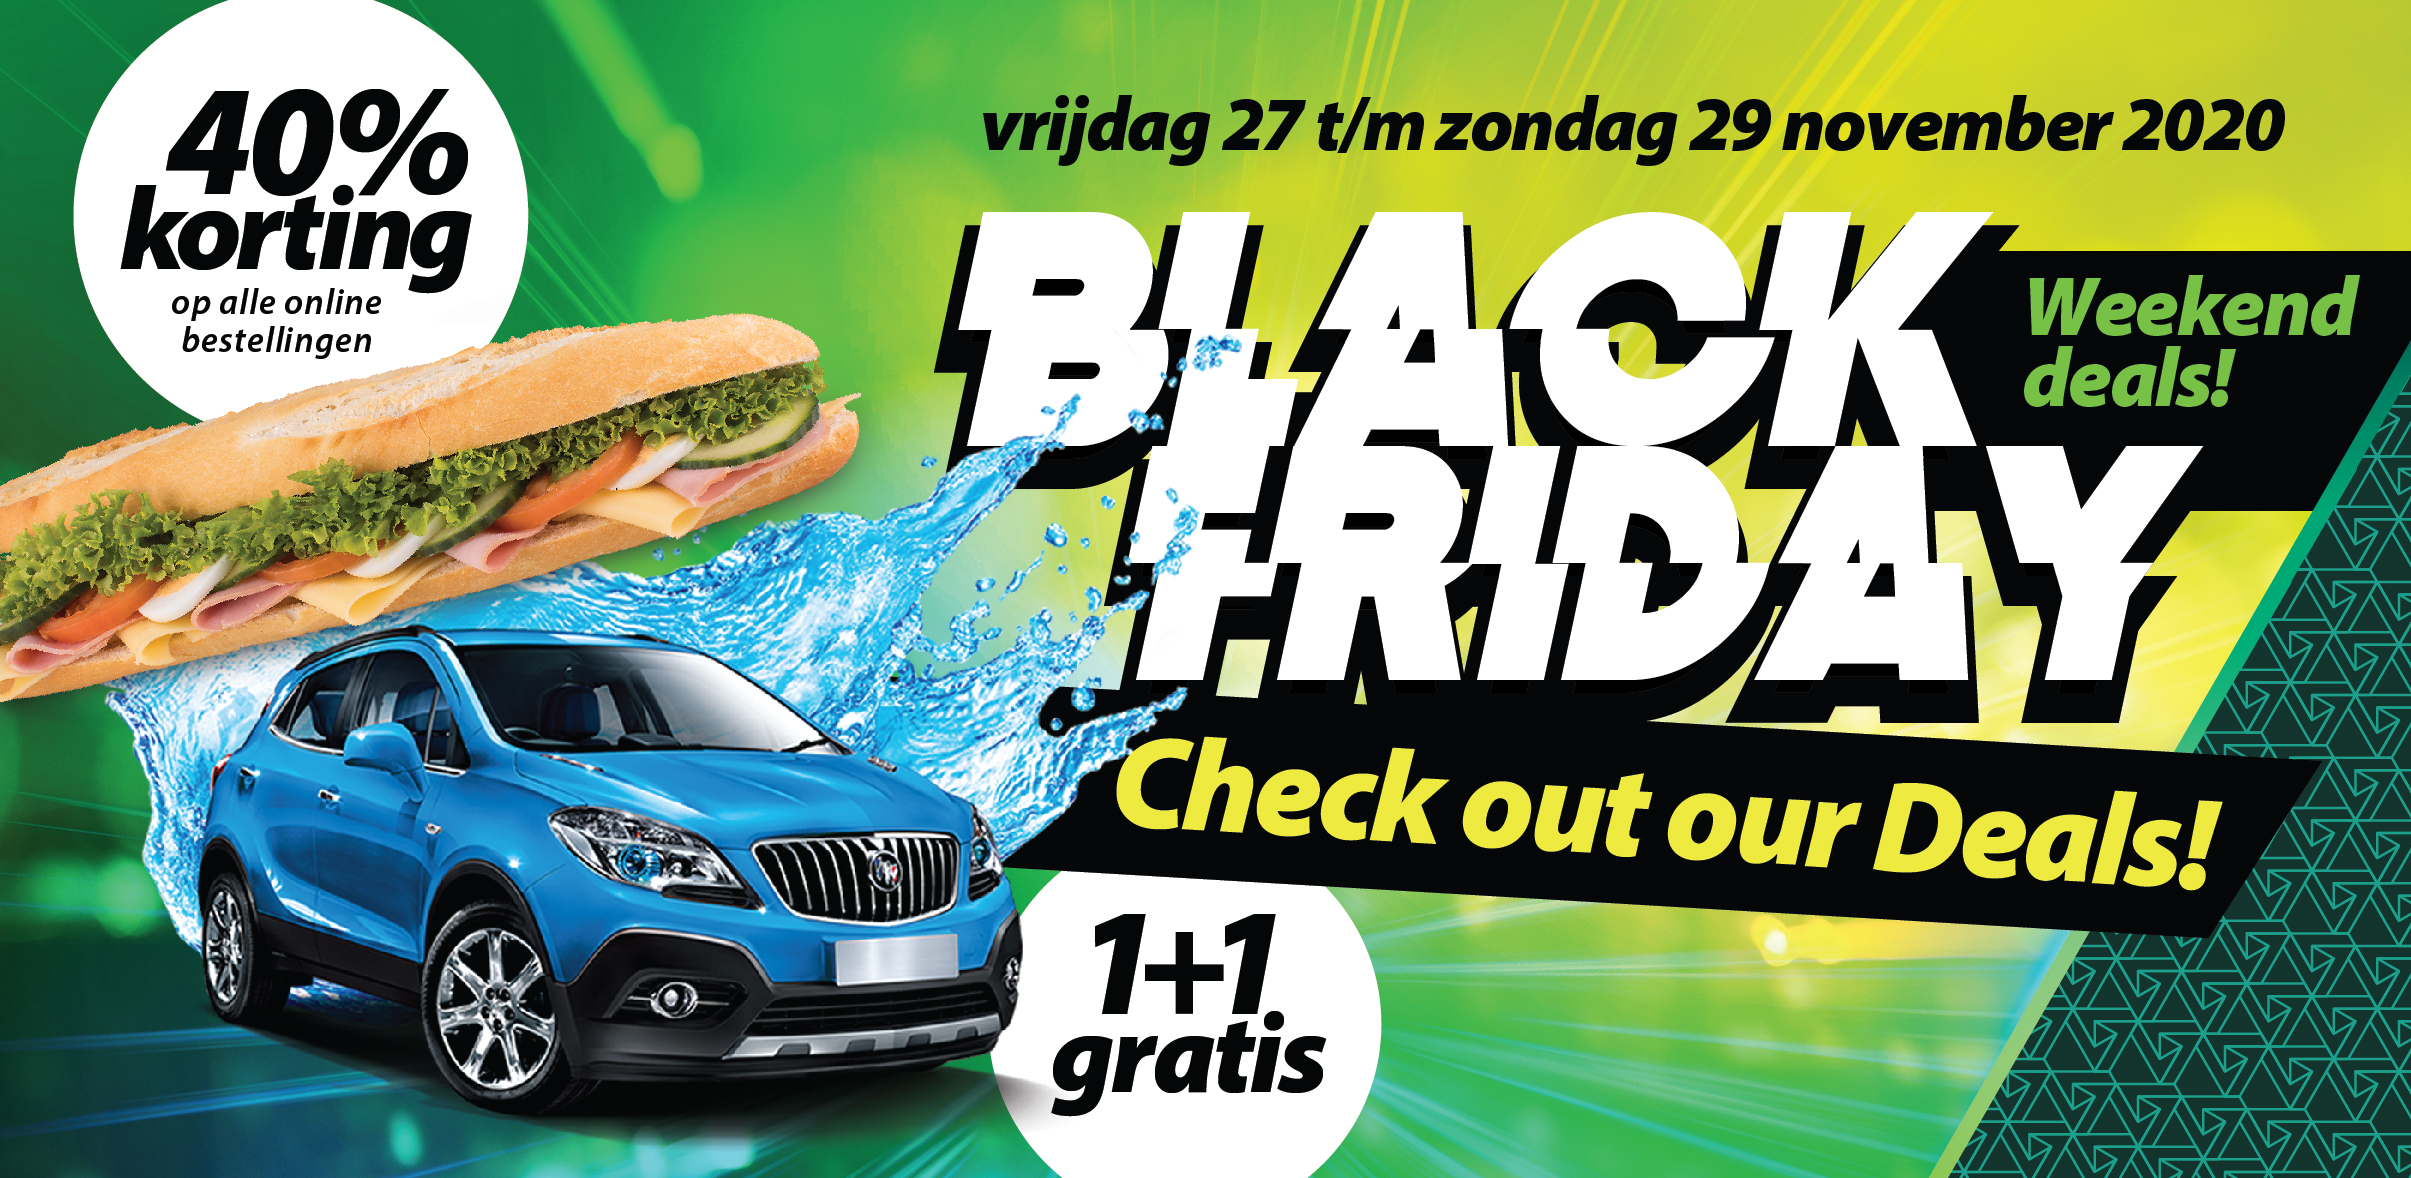 <p>Black friday - Weekend deals</p>